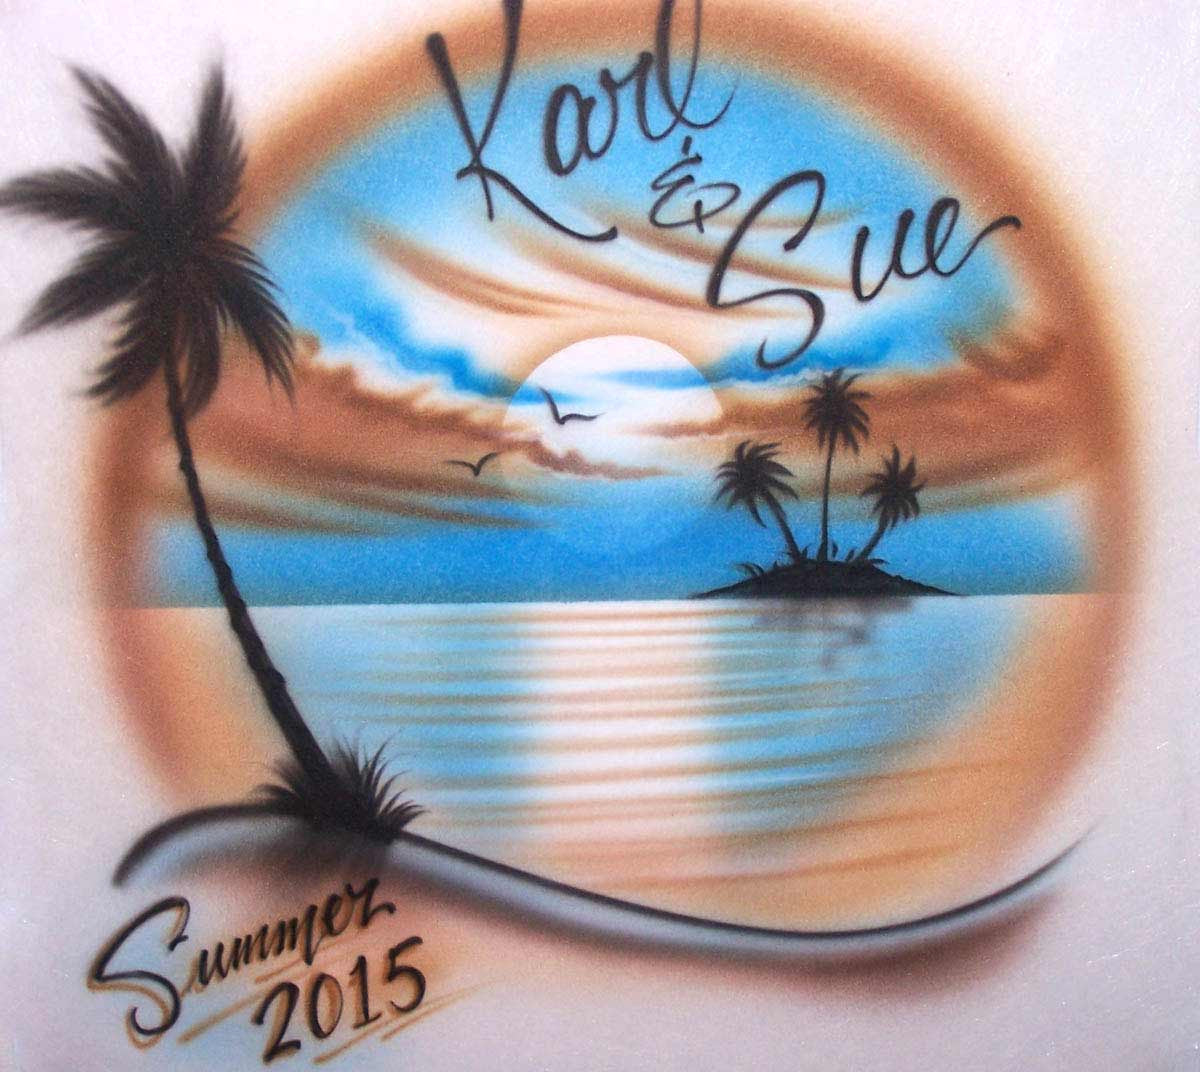 Earth Tone Beach scene with 2 names airbrushed